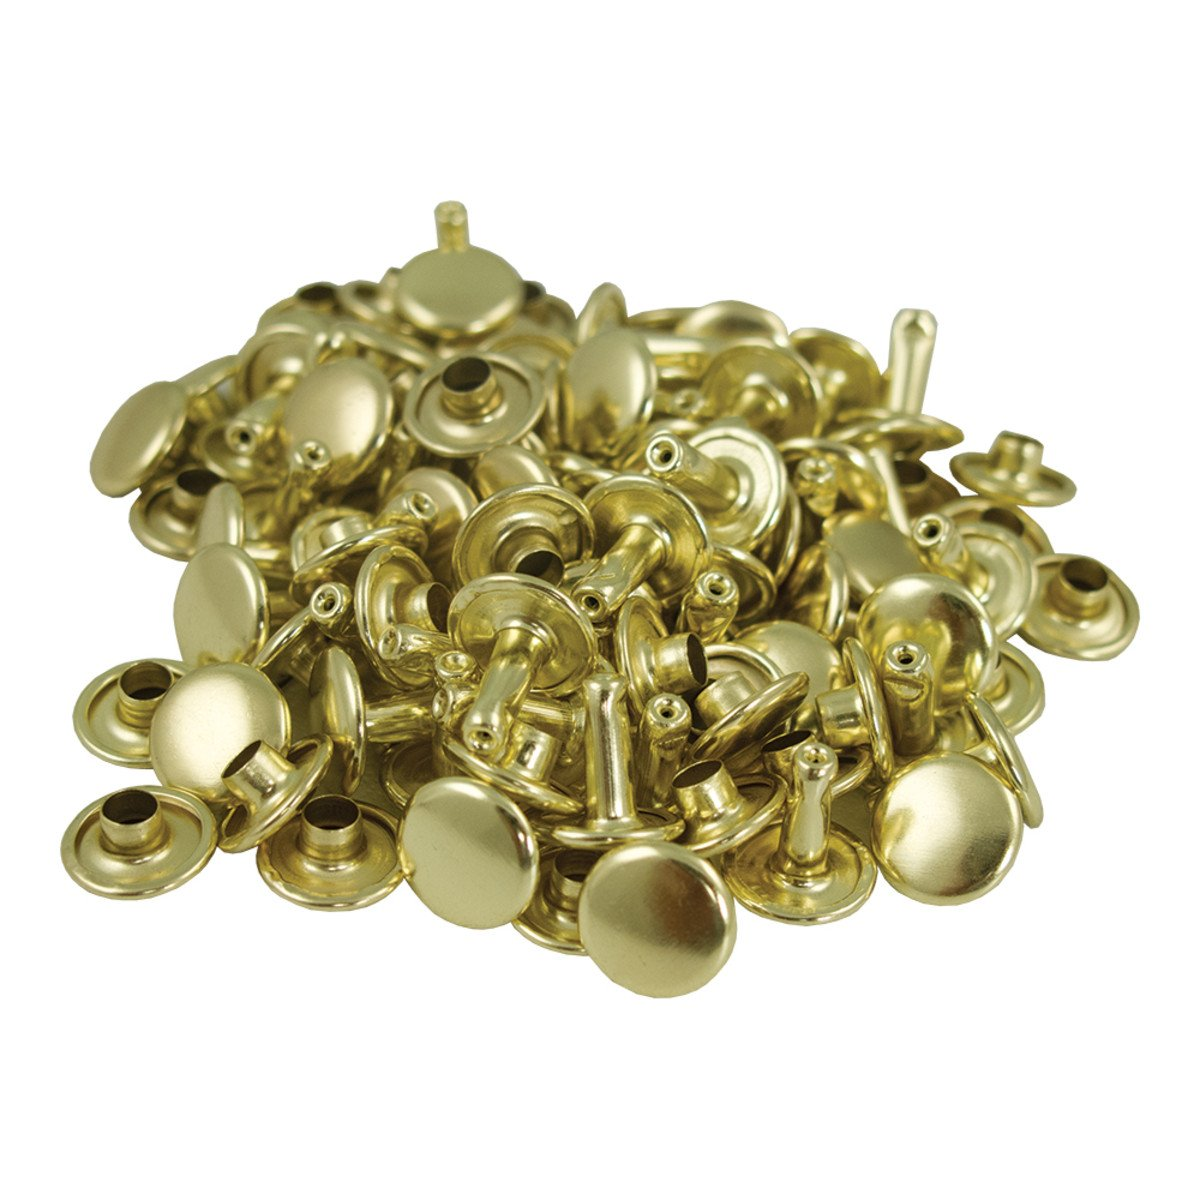 Springfield Leather Company's Gold Plate Medium Double Cap Rivets 1000pk